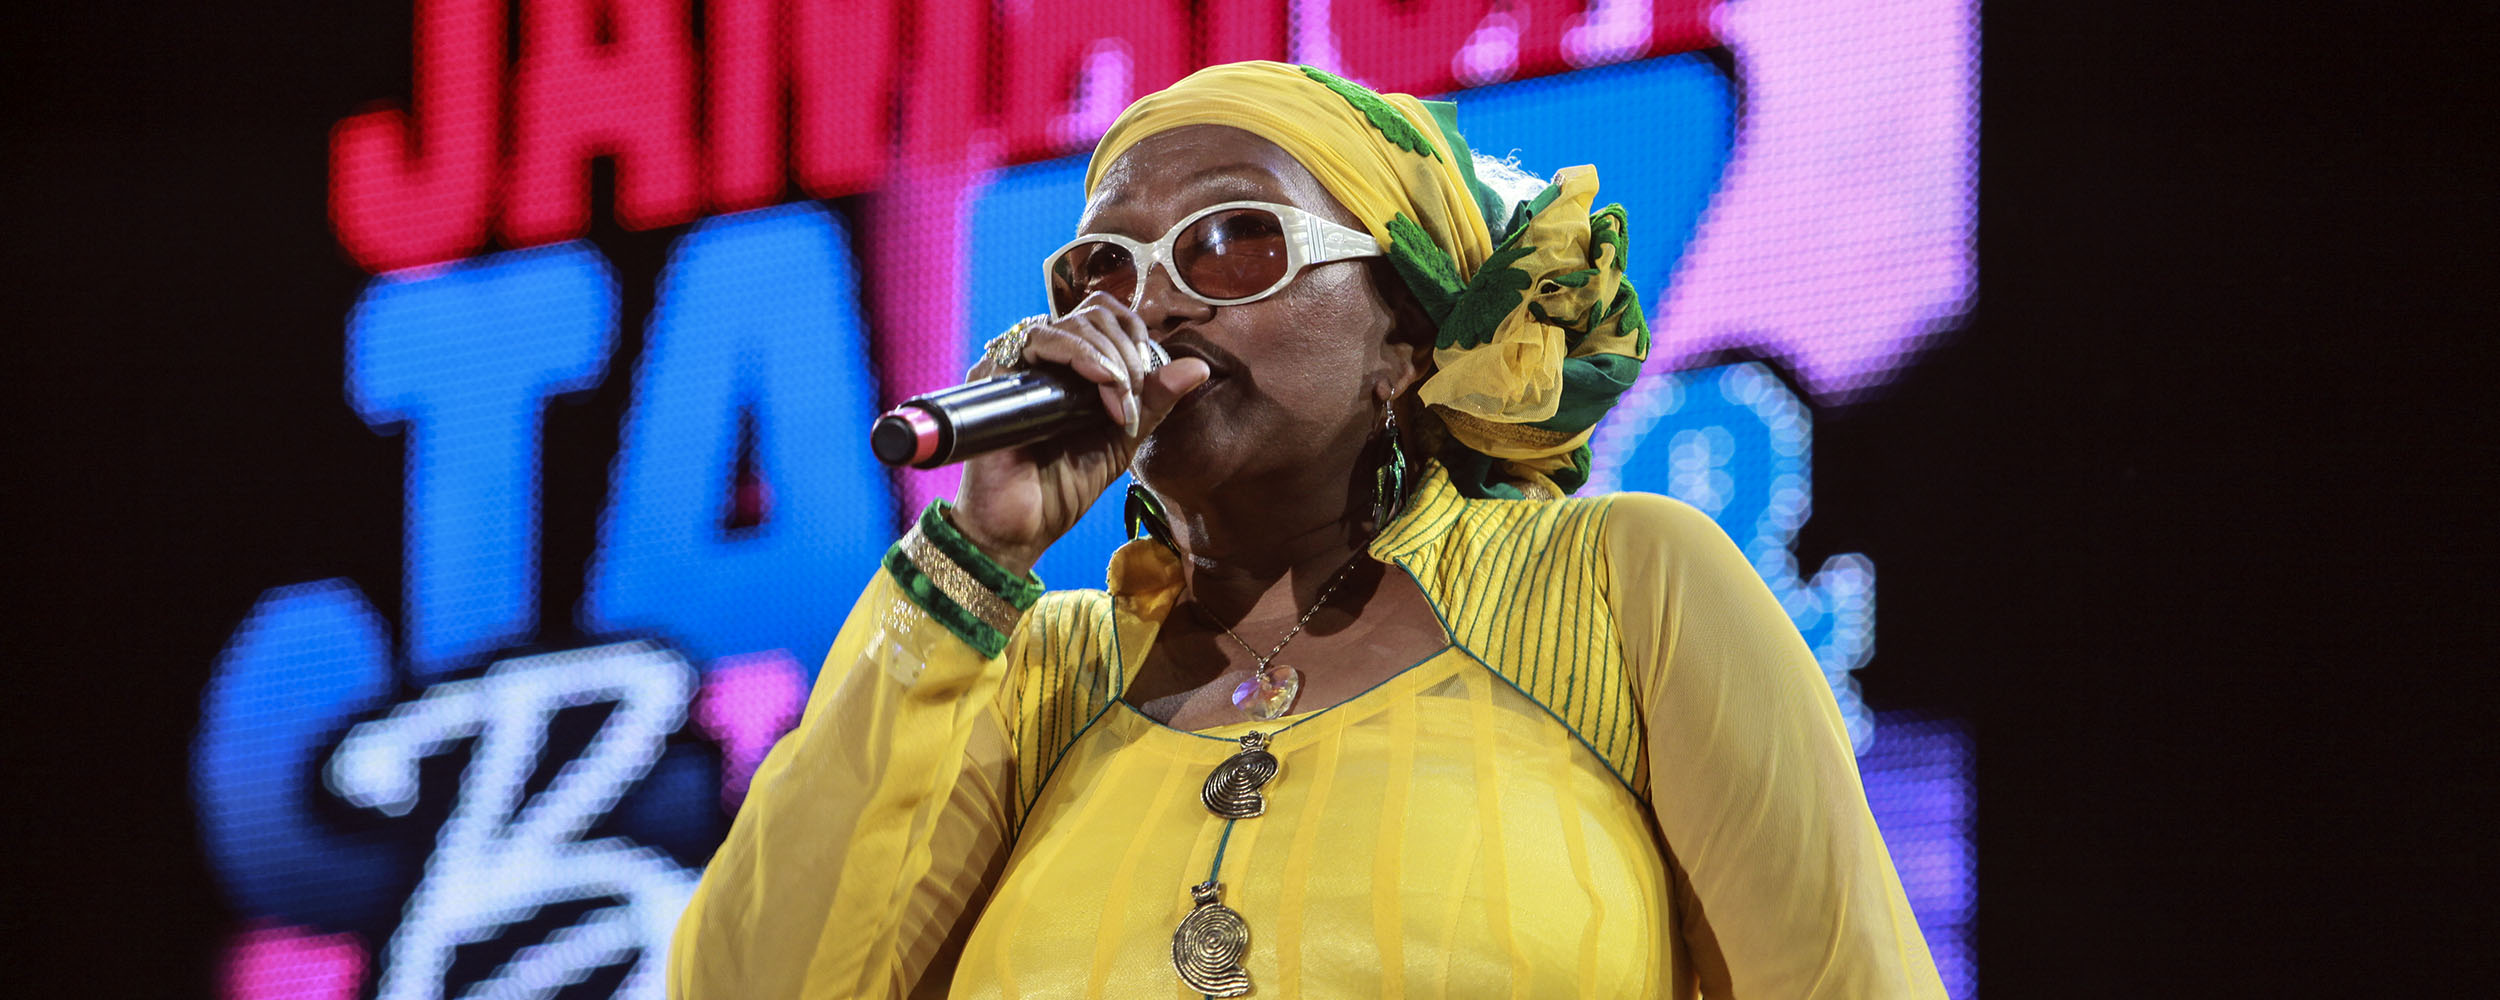 Marcia Griffiths Jazz & Blues 2014 - Clive's Transport Service Jamaica - www.clivestransportservicejamaica.com - www.clivestransportservicejamaica.net